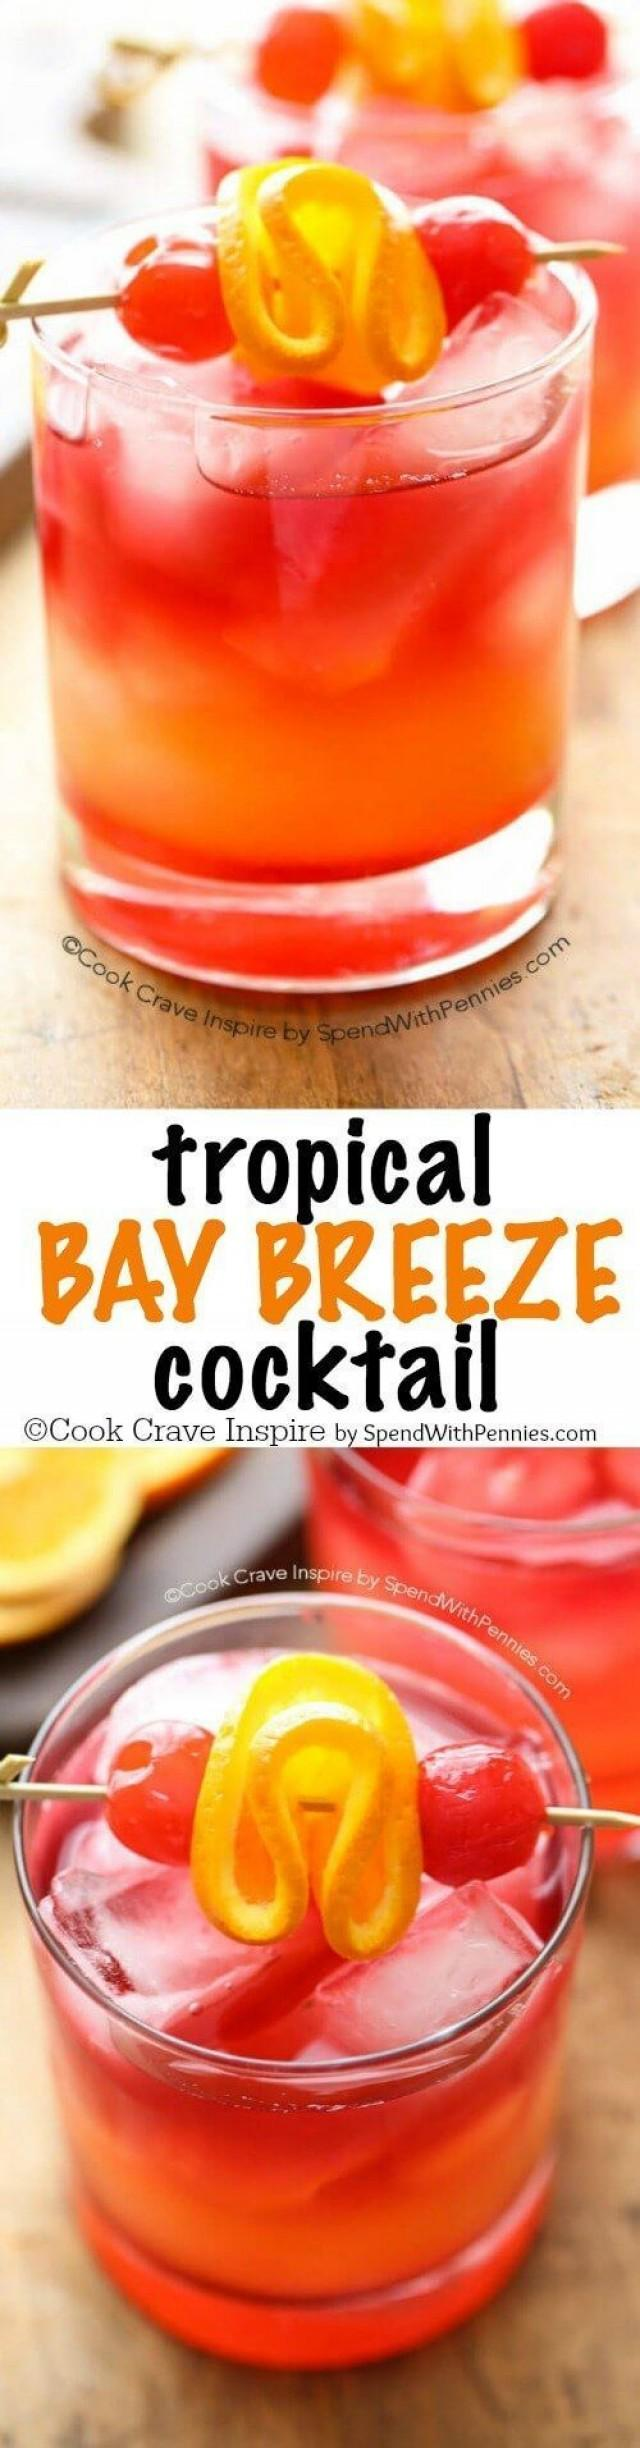 This Easy To Make Tropical Bay Breeze Cocktail Is A Taste Of The Tropics With Flavors Of Pineapple And Coconut Rum. (Plus The Easy…